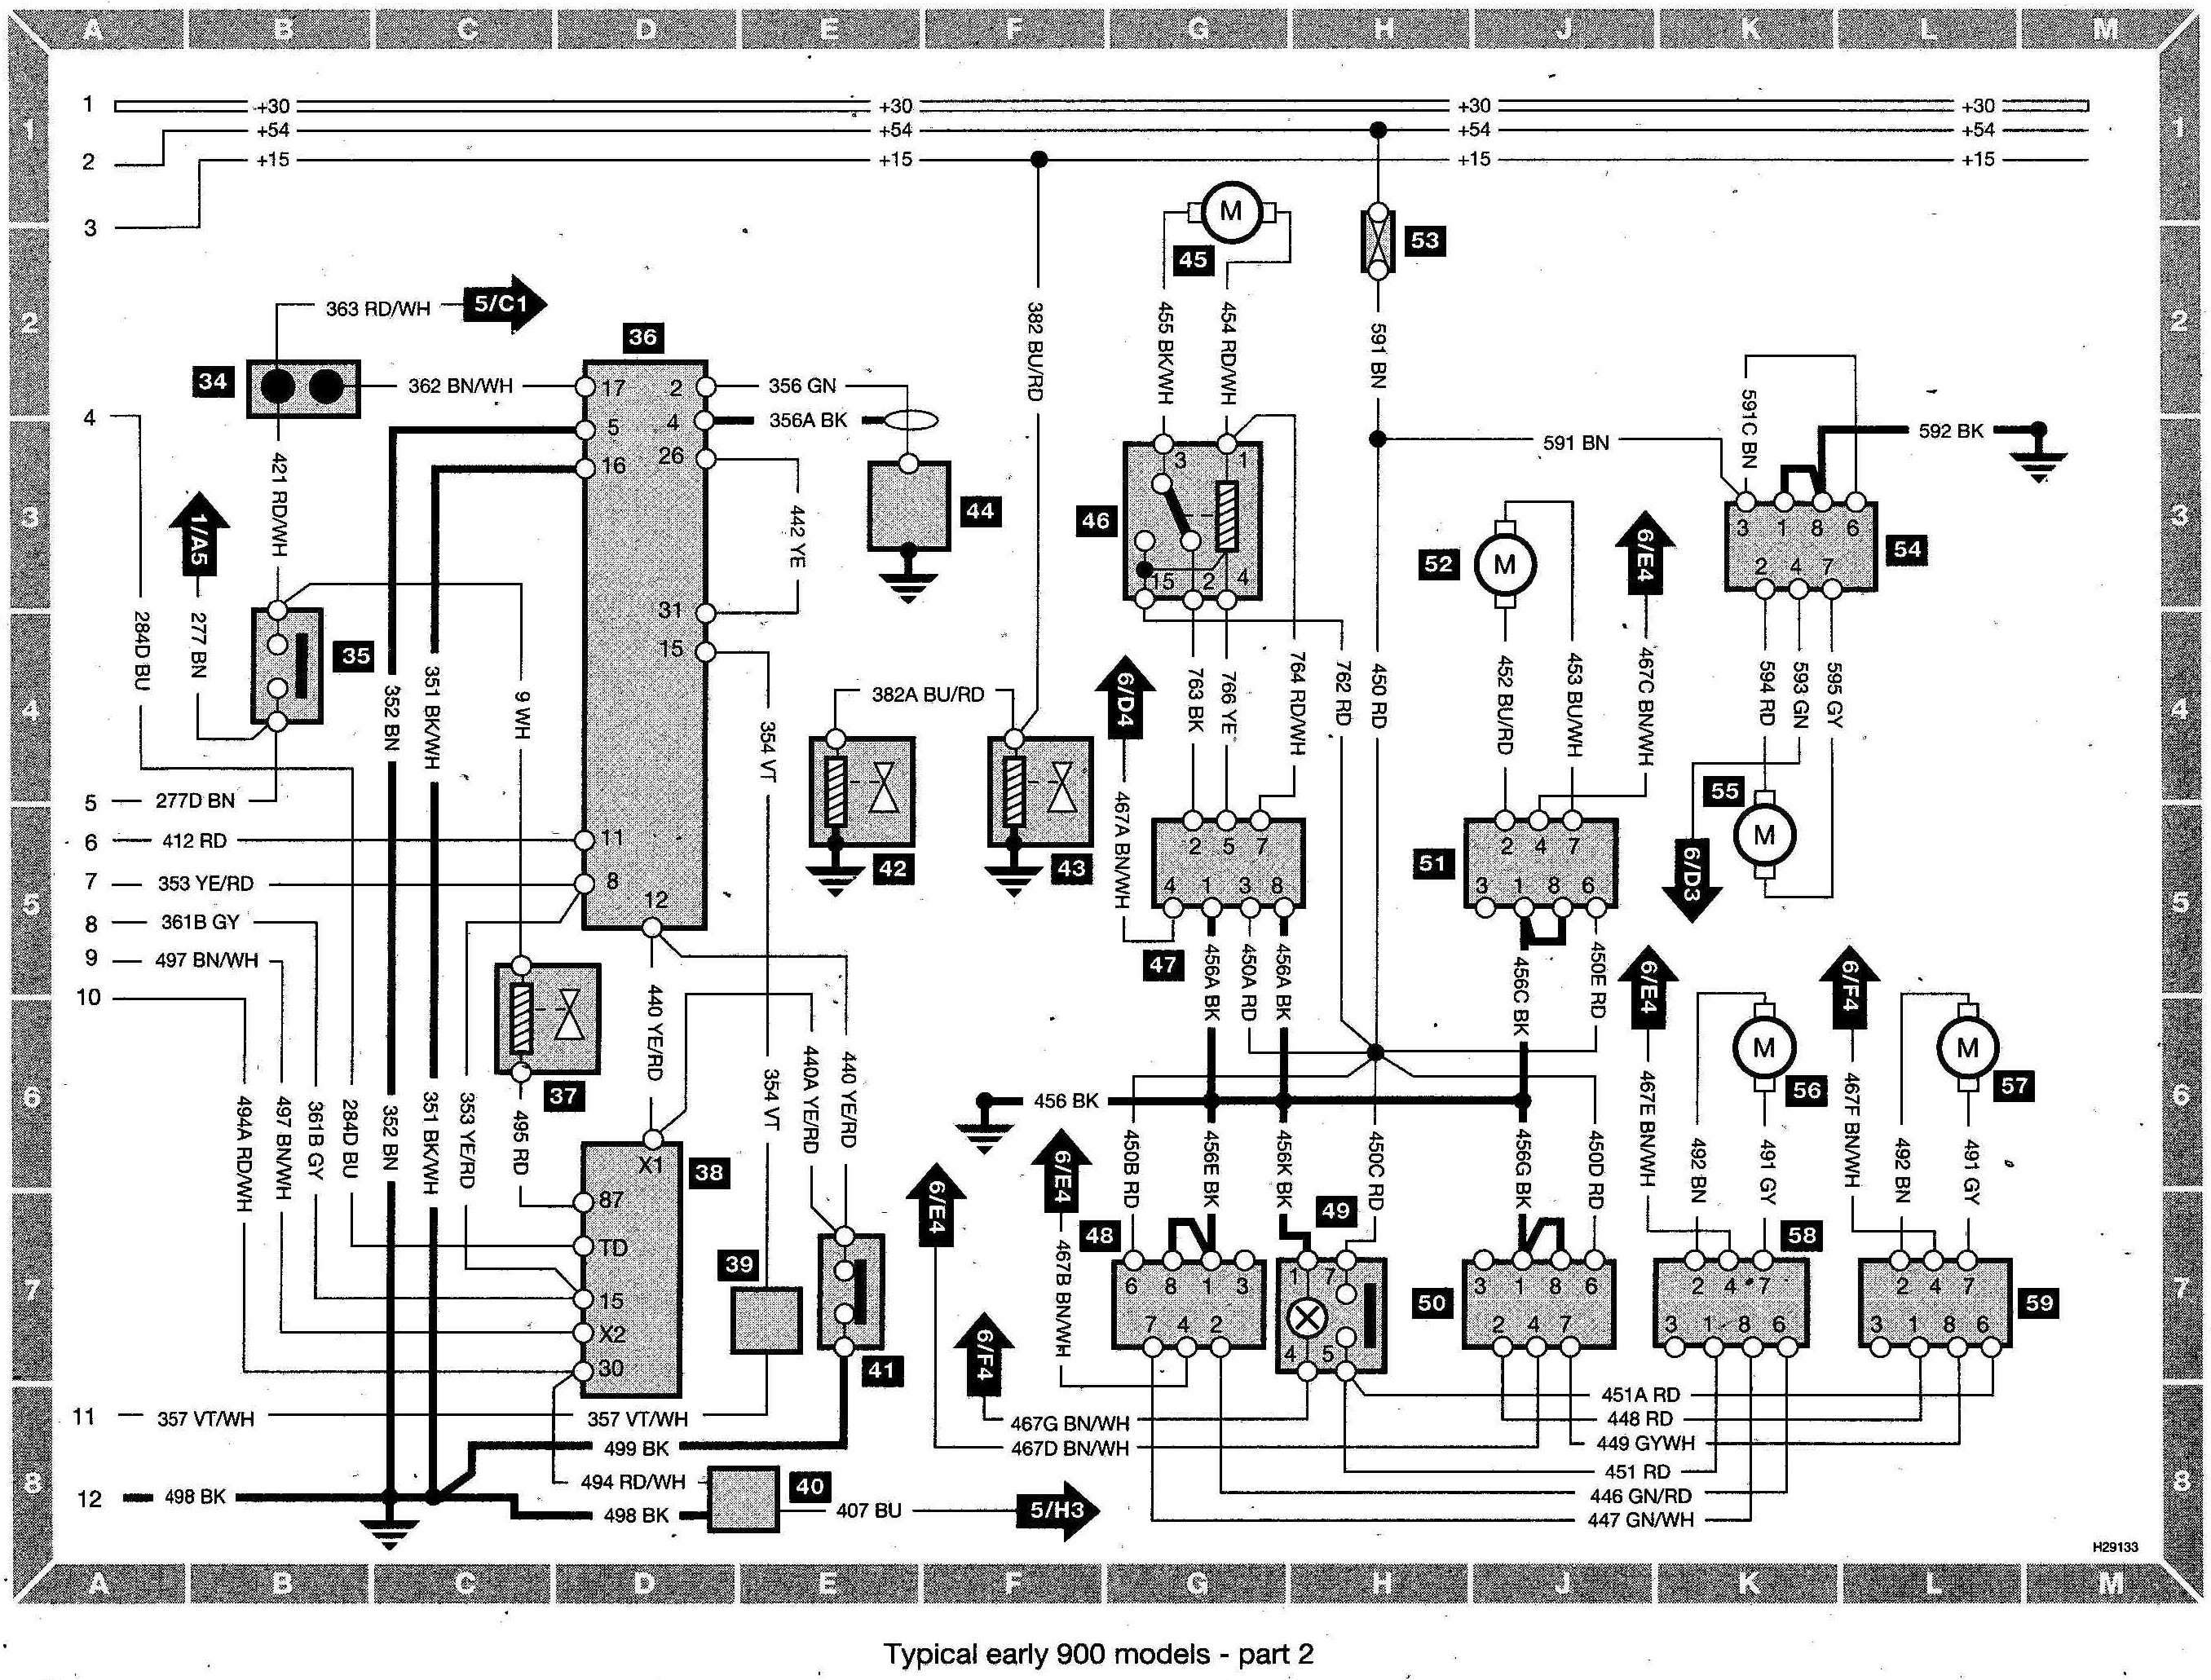 Saab 9000 Vacuum Diagram Diy Enthusiasts Wiring Diagrams \u2022 2006 Saab 9  -5 Fuse Box Diagram 2003 Saab 9 3 Linear Wiring Diagram